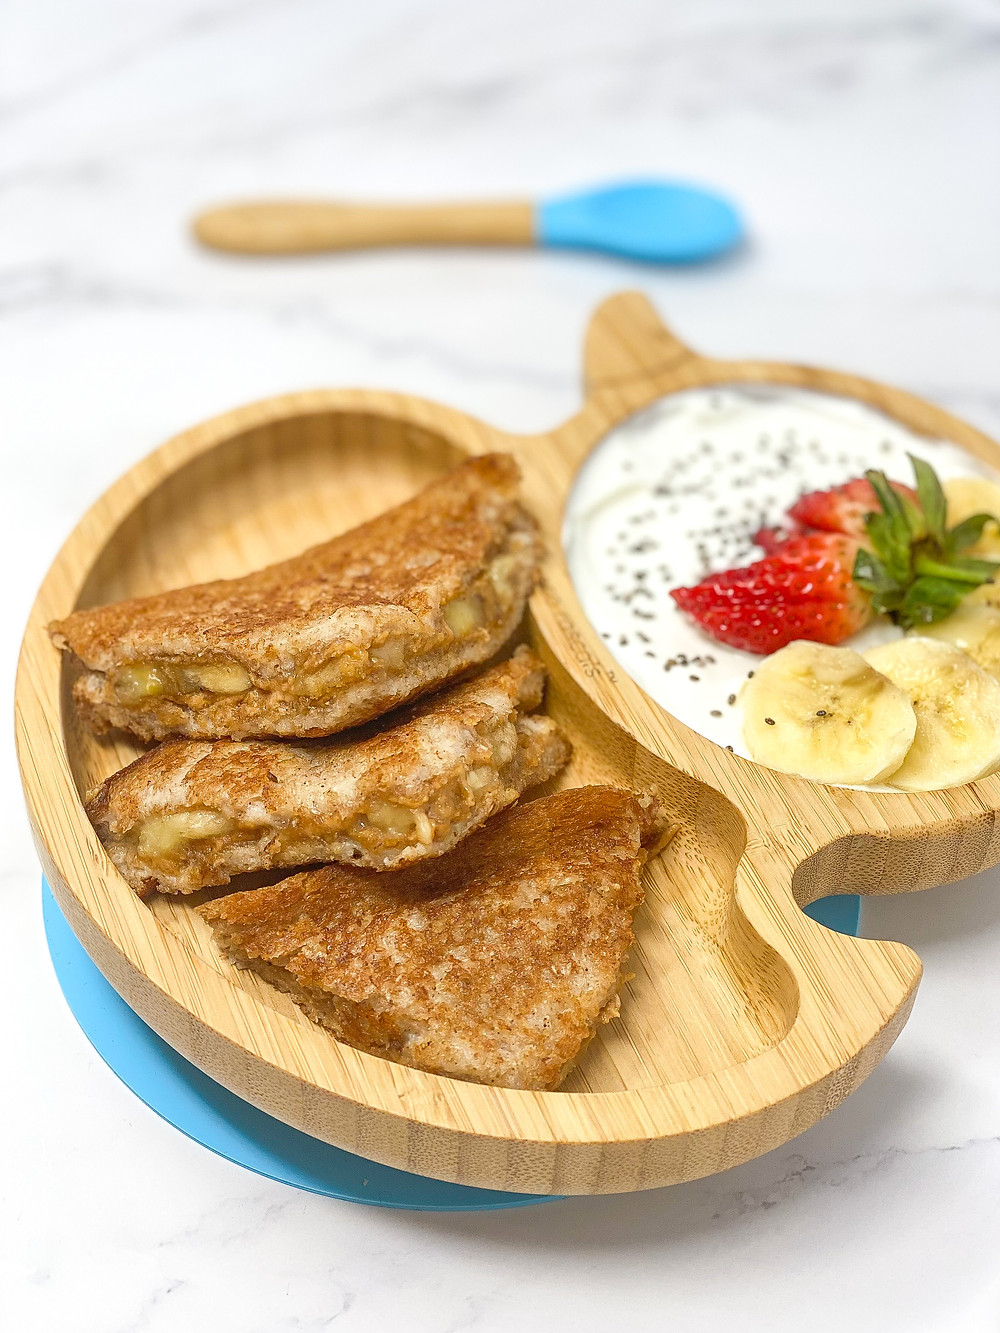 STUFFED FRENCH TOAST -EGG FREE- served in bamboo kids plate